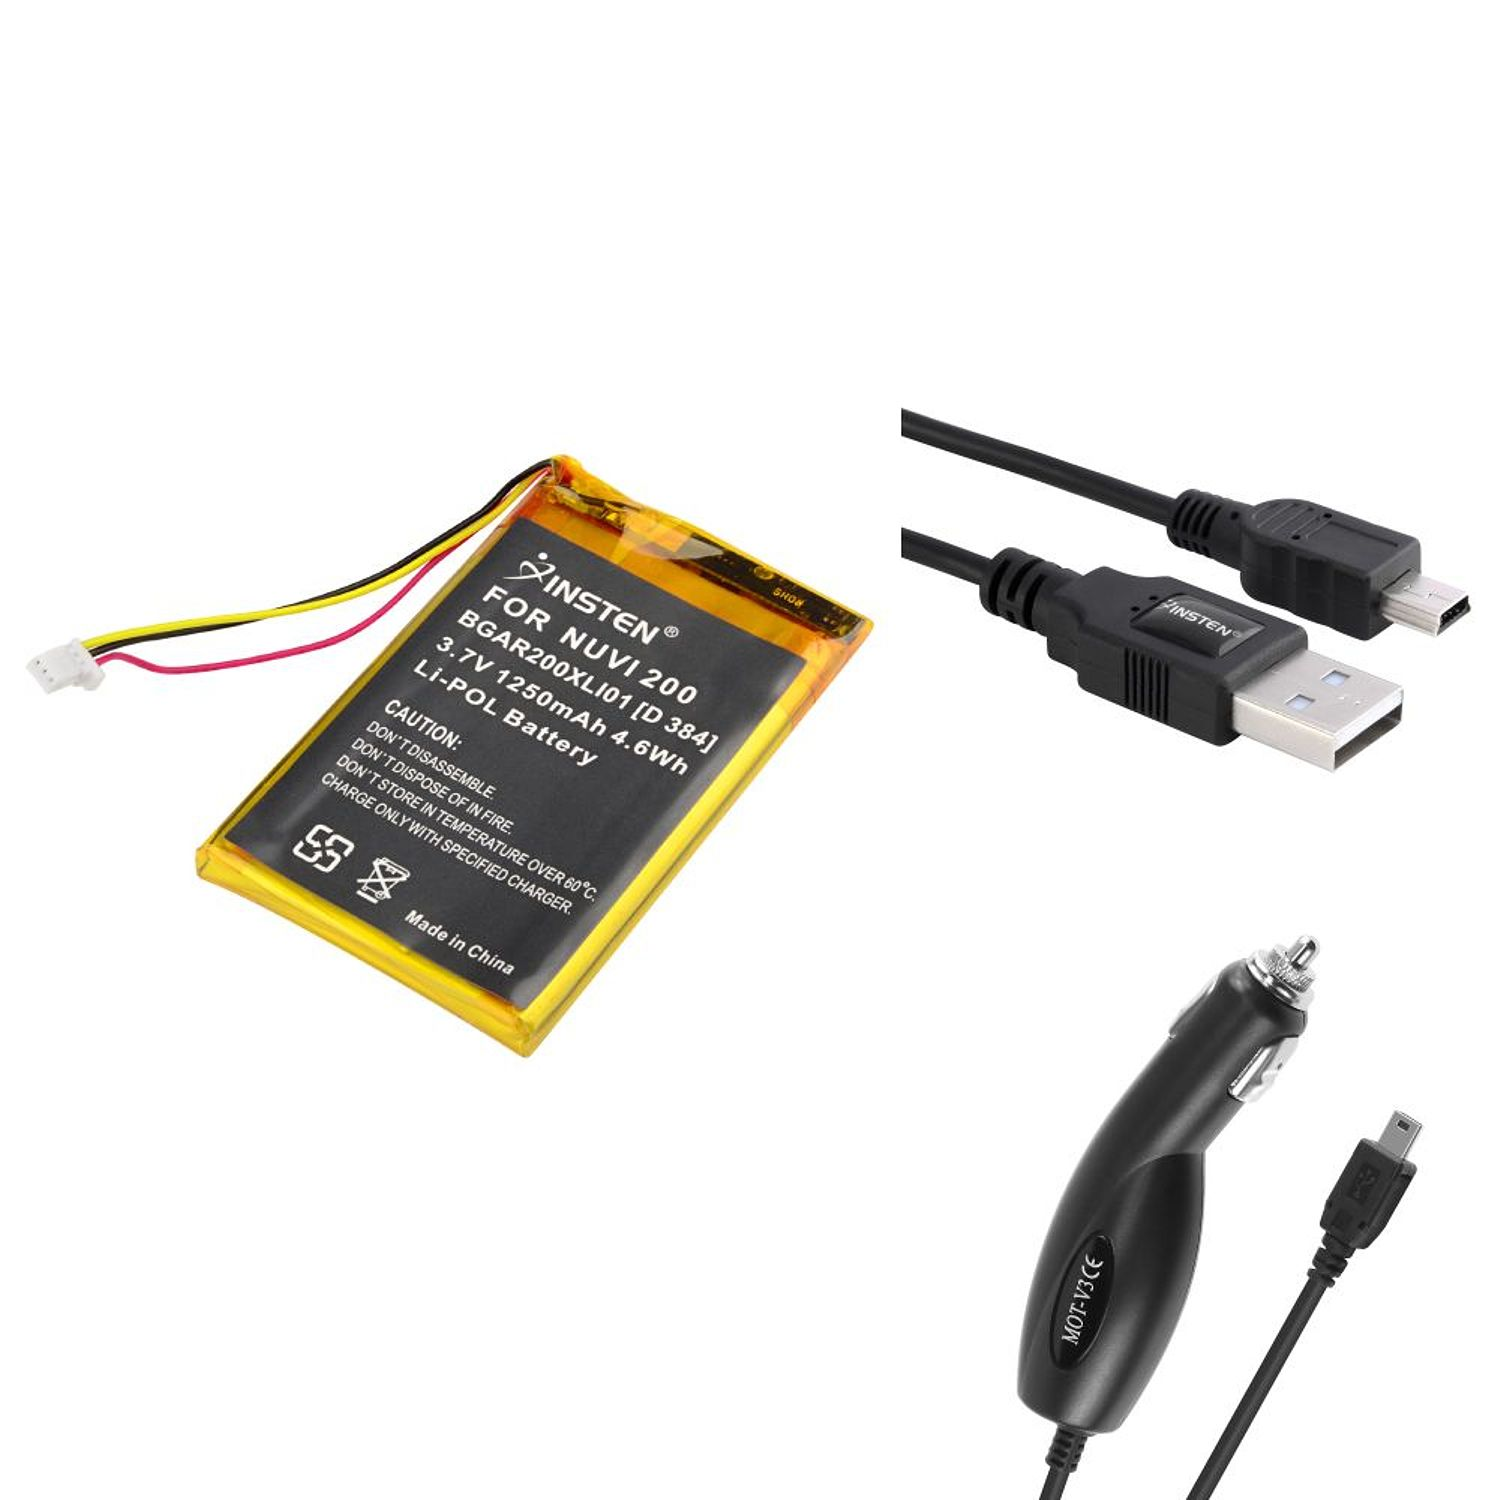 Wiring diagram garmin car charger wiring diagram portal insten battery usb car charger for garmin nuvi 200 200w 205 w 3 in rh walmart com battery charger wiring diagram schumacher battery charger wiring diagram asfbconference2016 Images